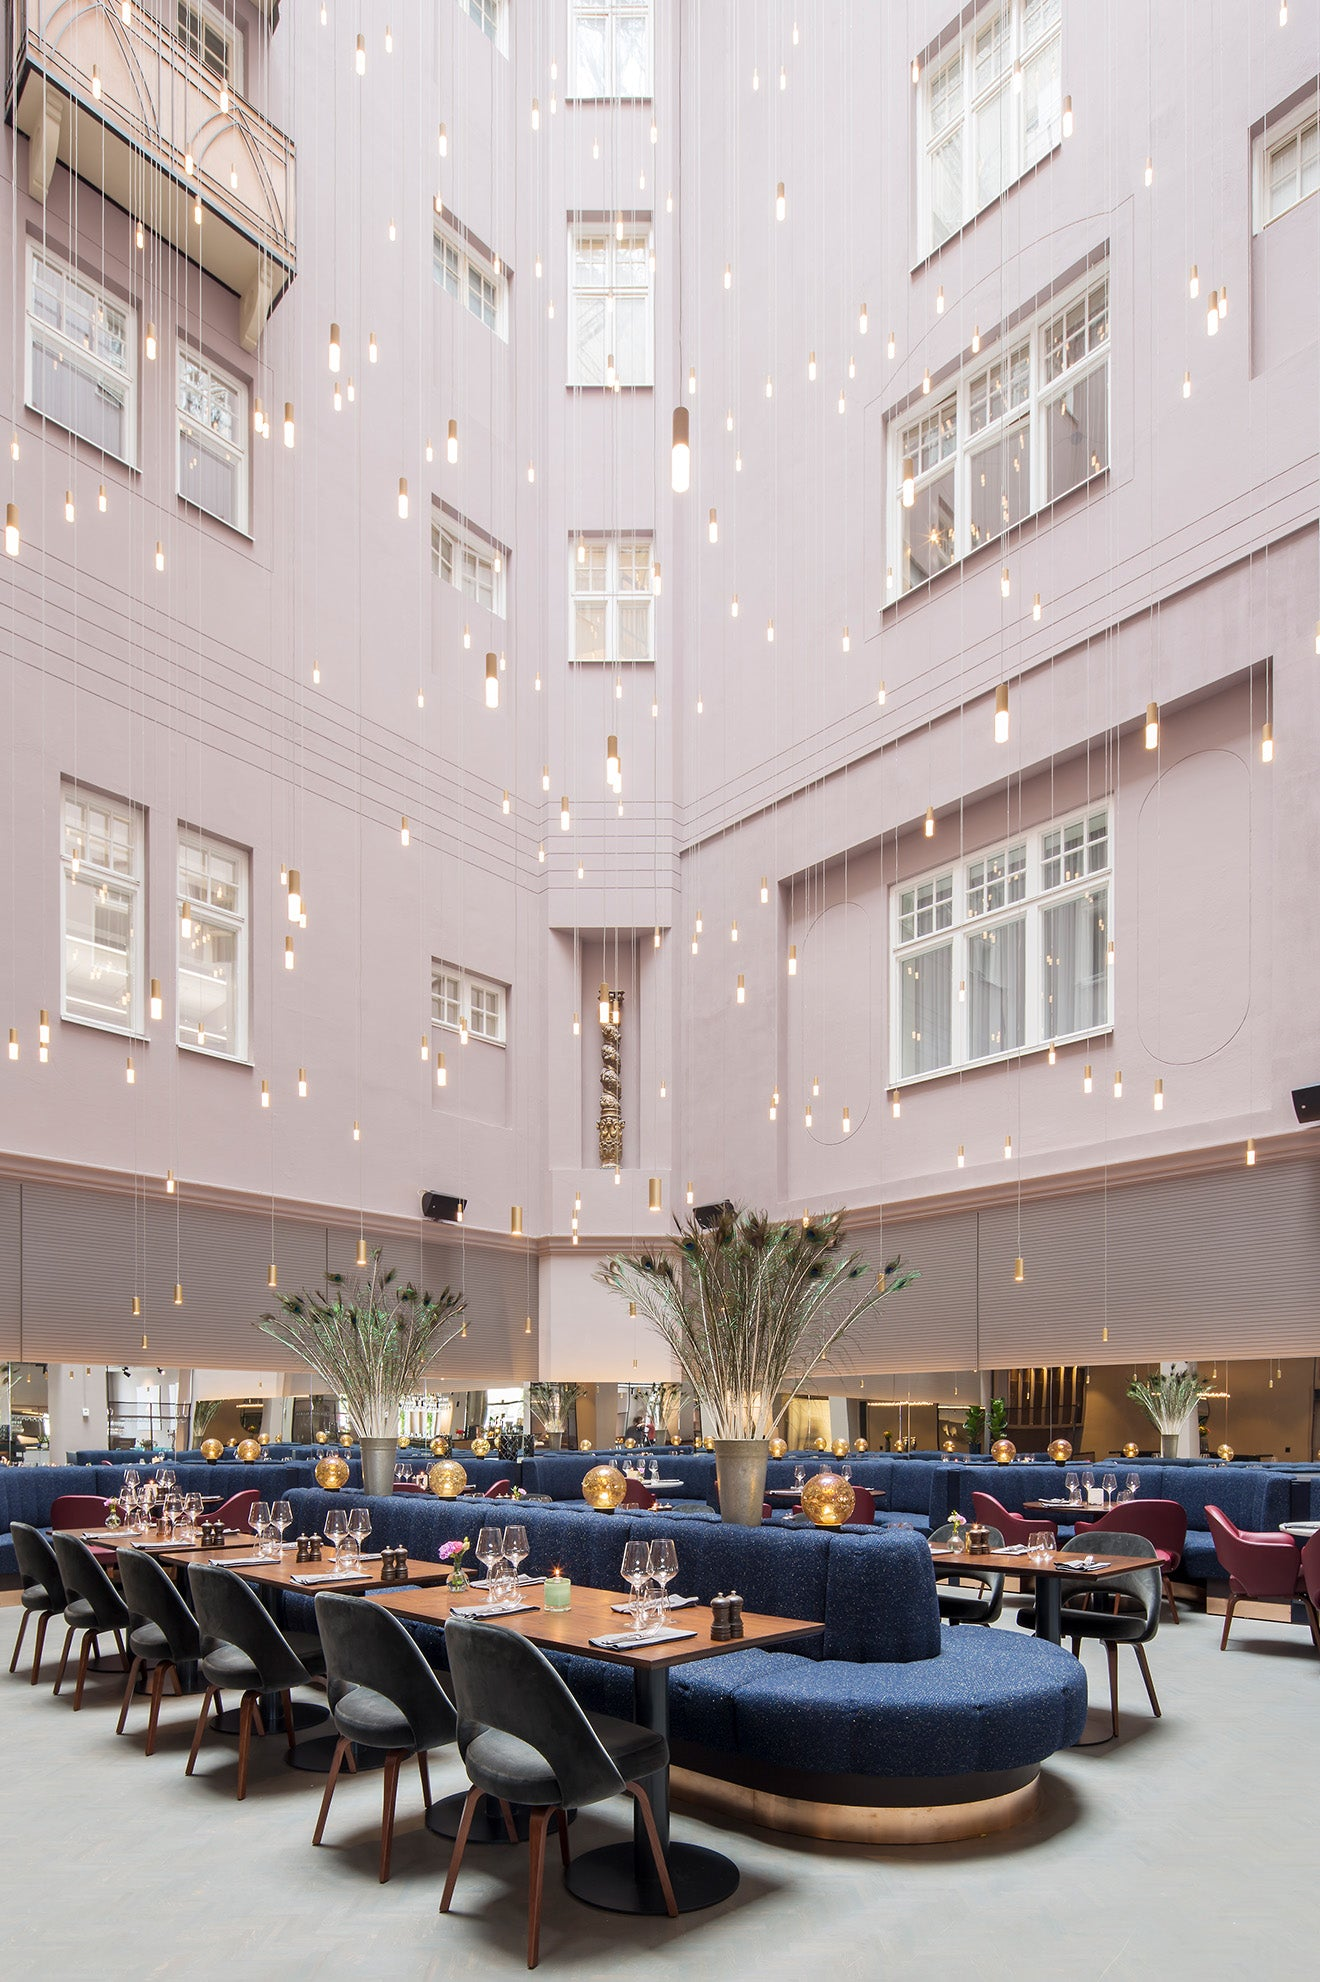 Radisson Collection Strand Stockholm Restaurant with Lighting Feature